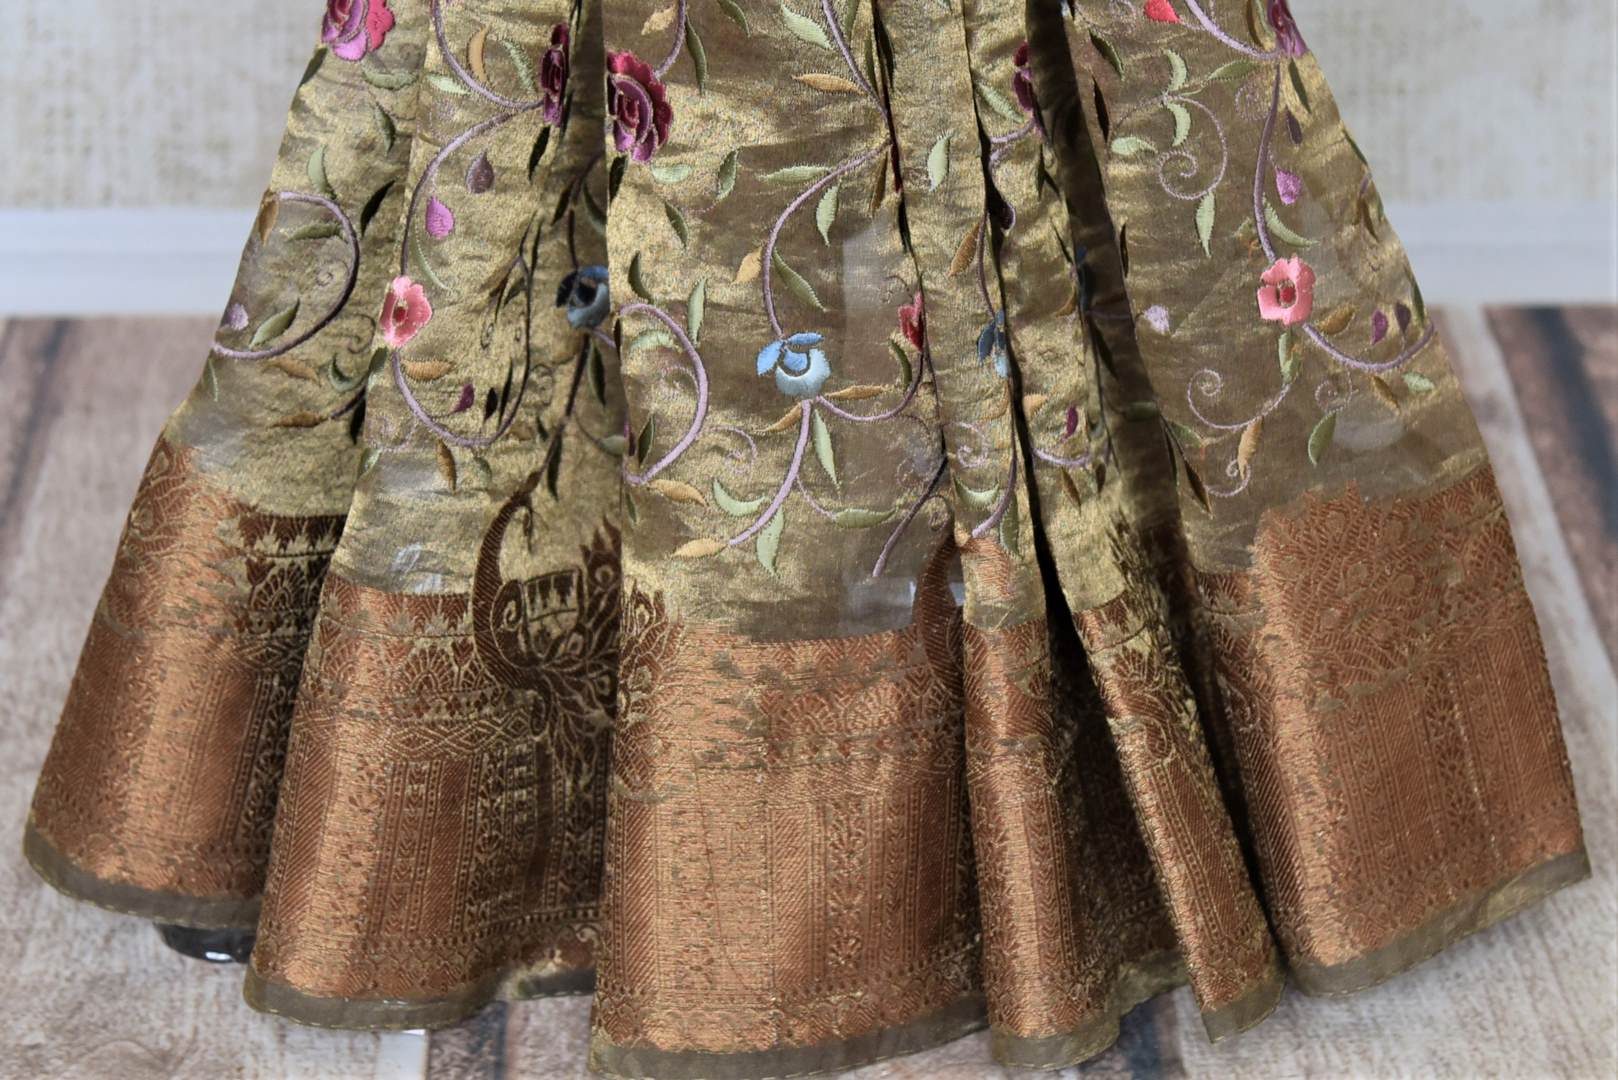 Buy gorgeous golden embroidered metallic linen sari online in USA. Be the talk of the occasions in exquisite linen sarees, embroidered saris from Pure Elegance Indian fashion store in USA. -pleats